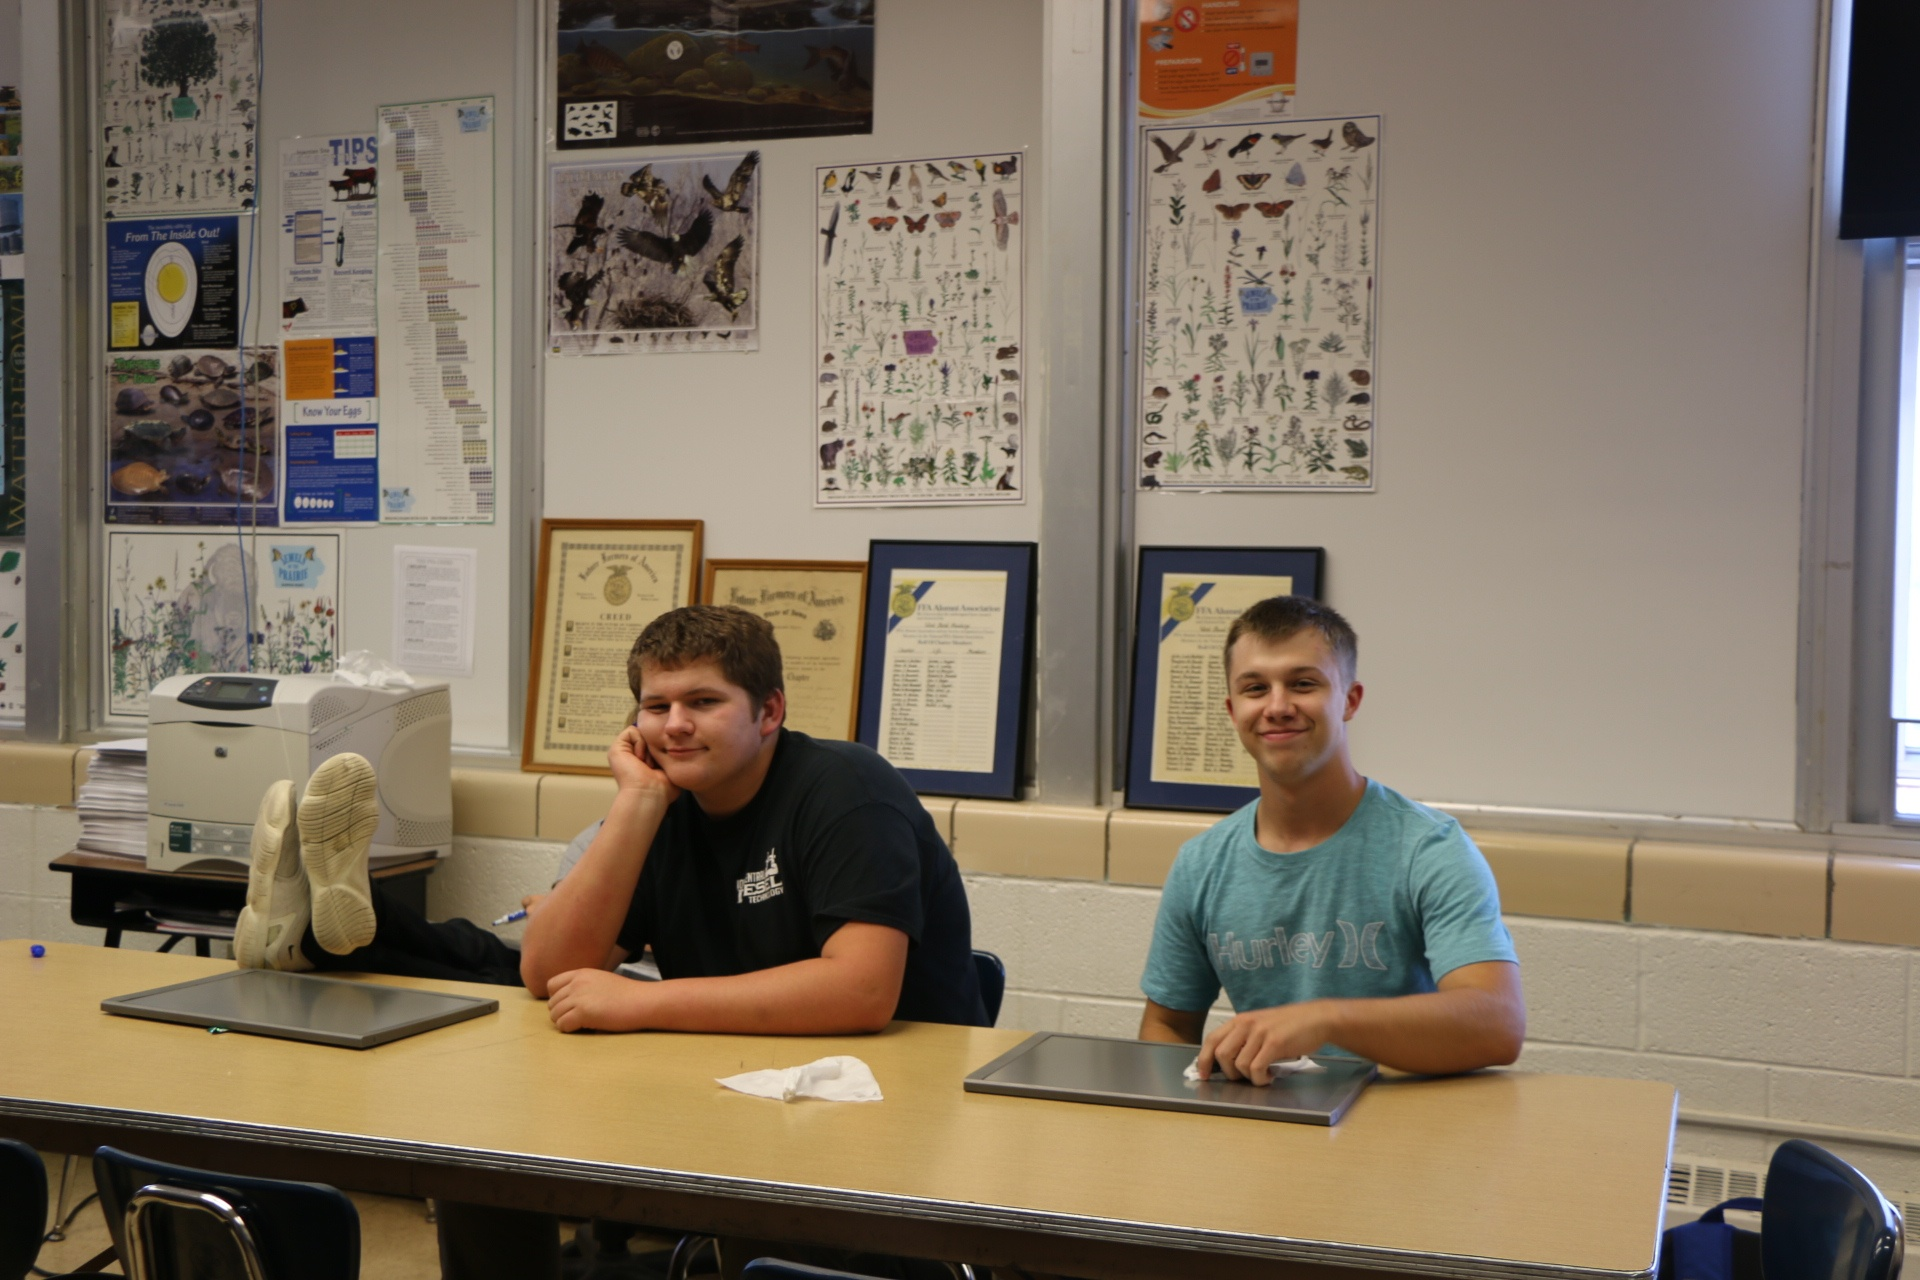 Logan Studer and Brandon Yoch in Ag class